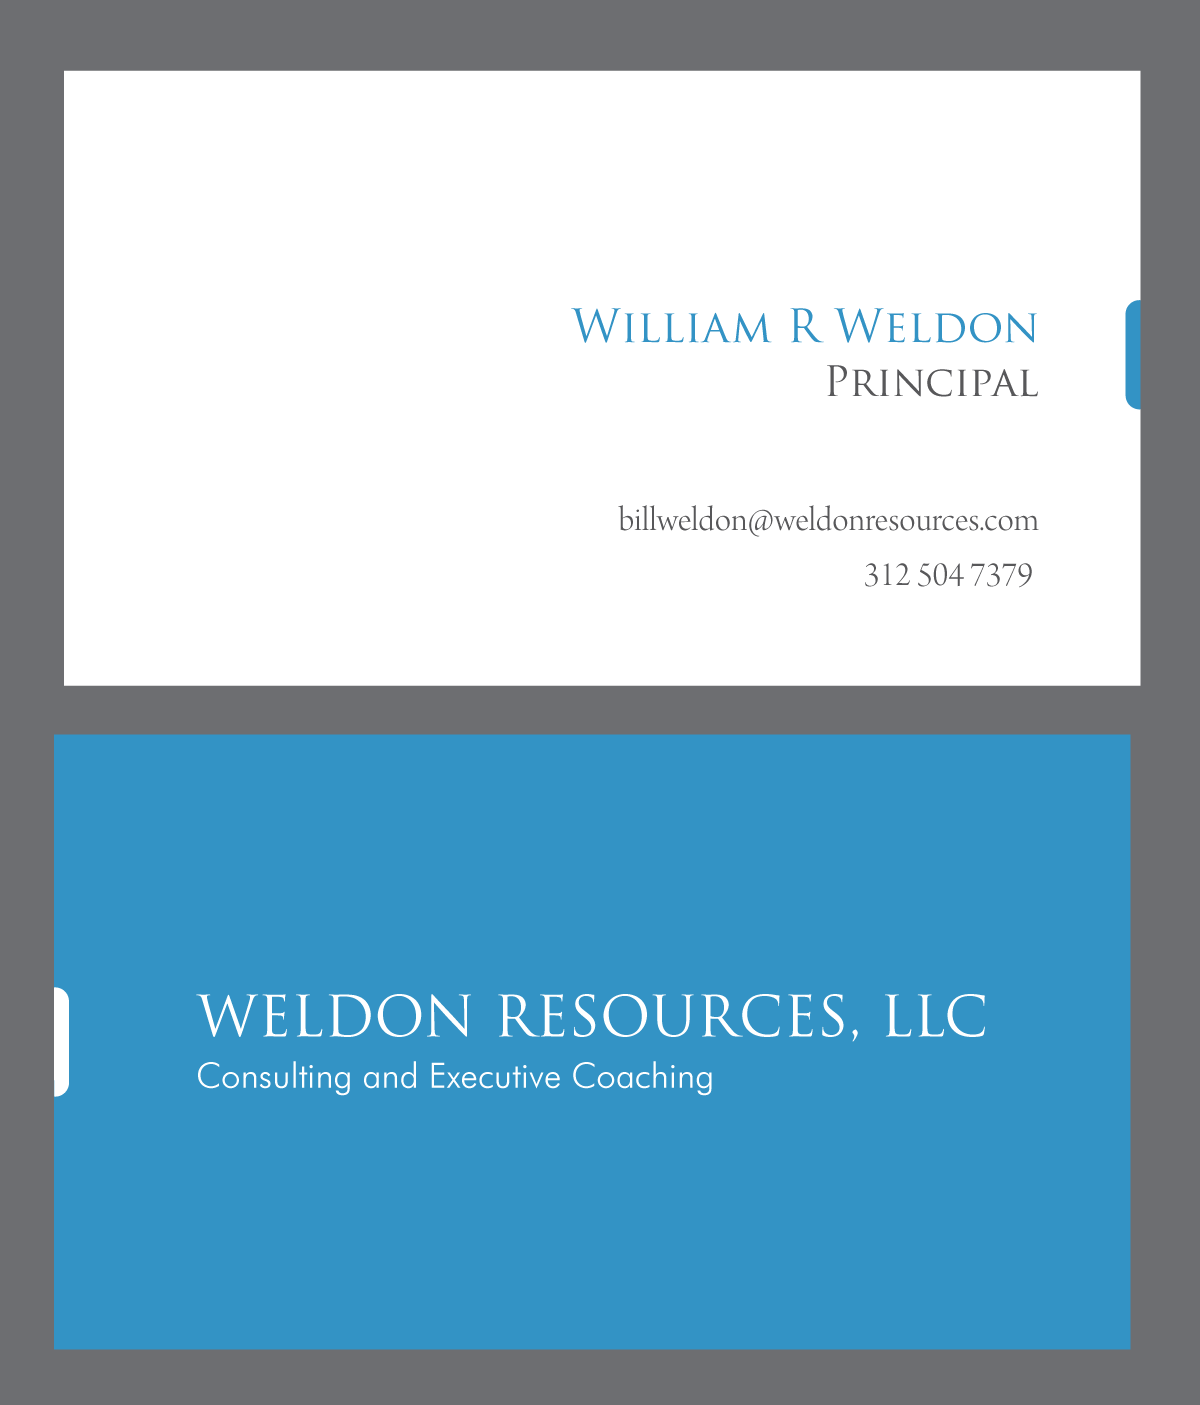 Create the next business card for WELDON  RESOURCES, LLC